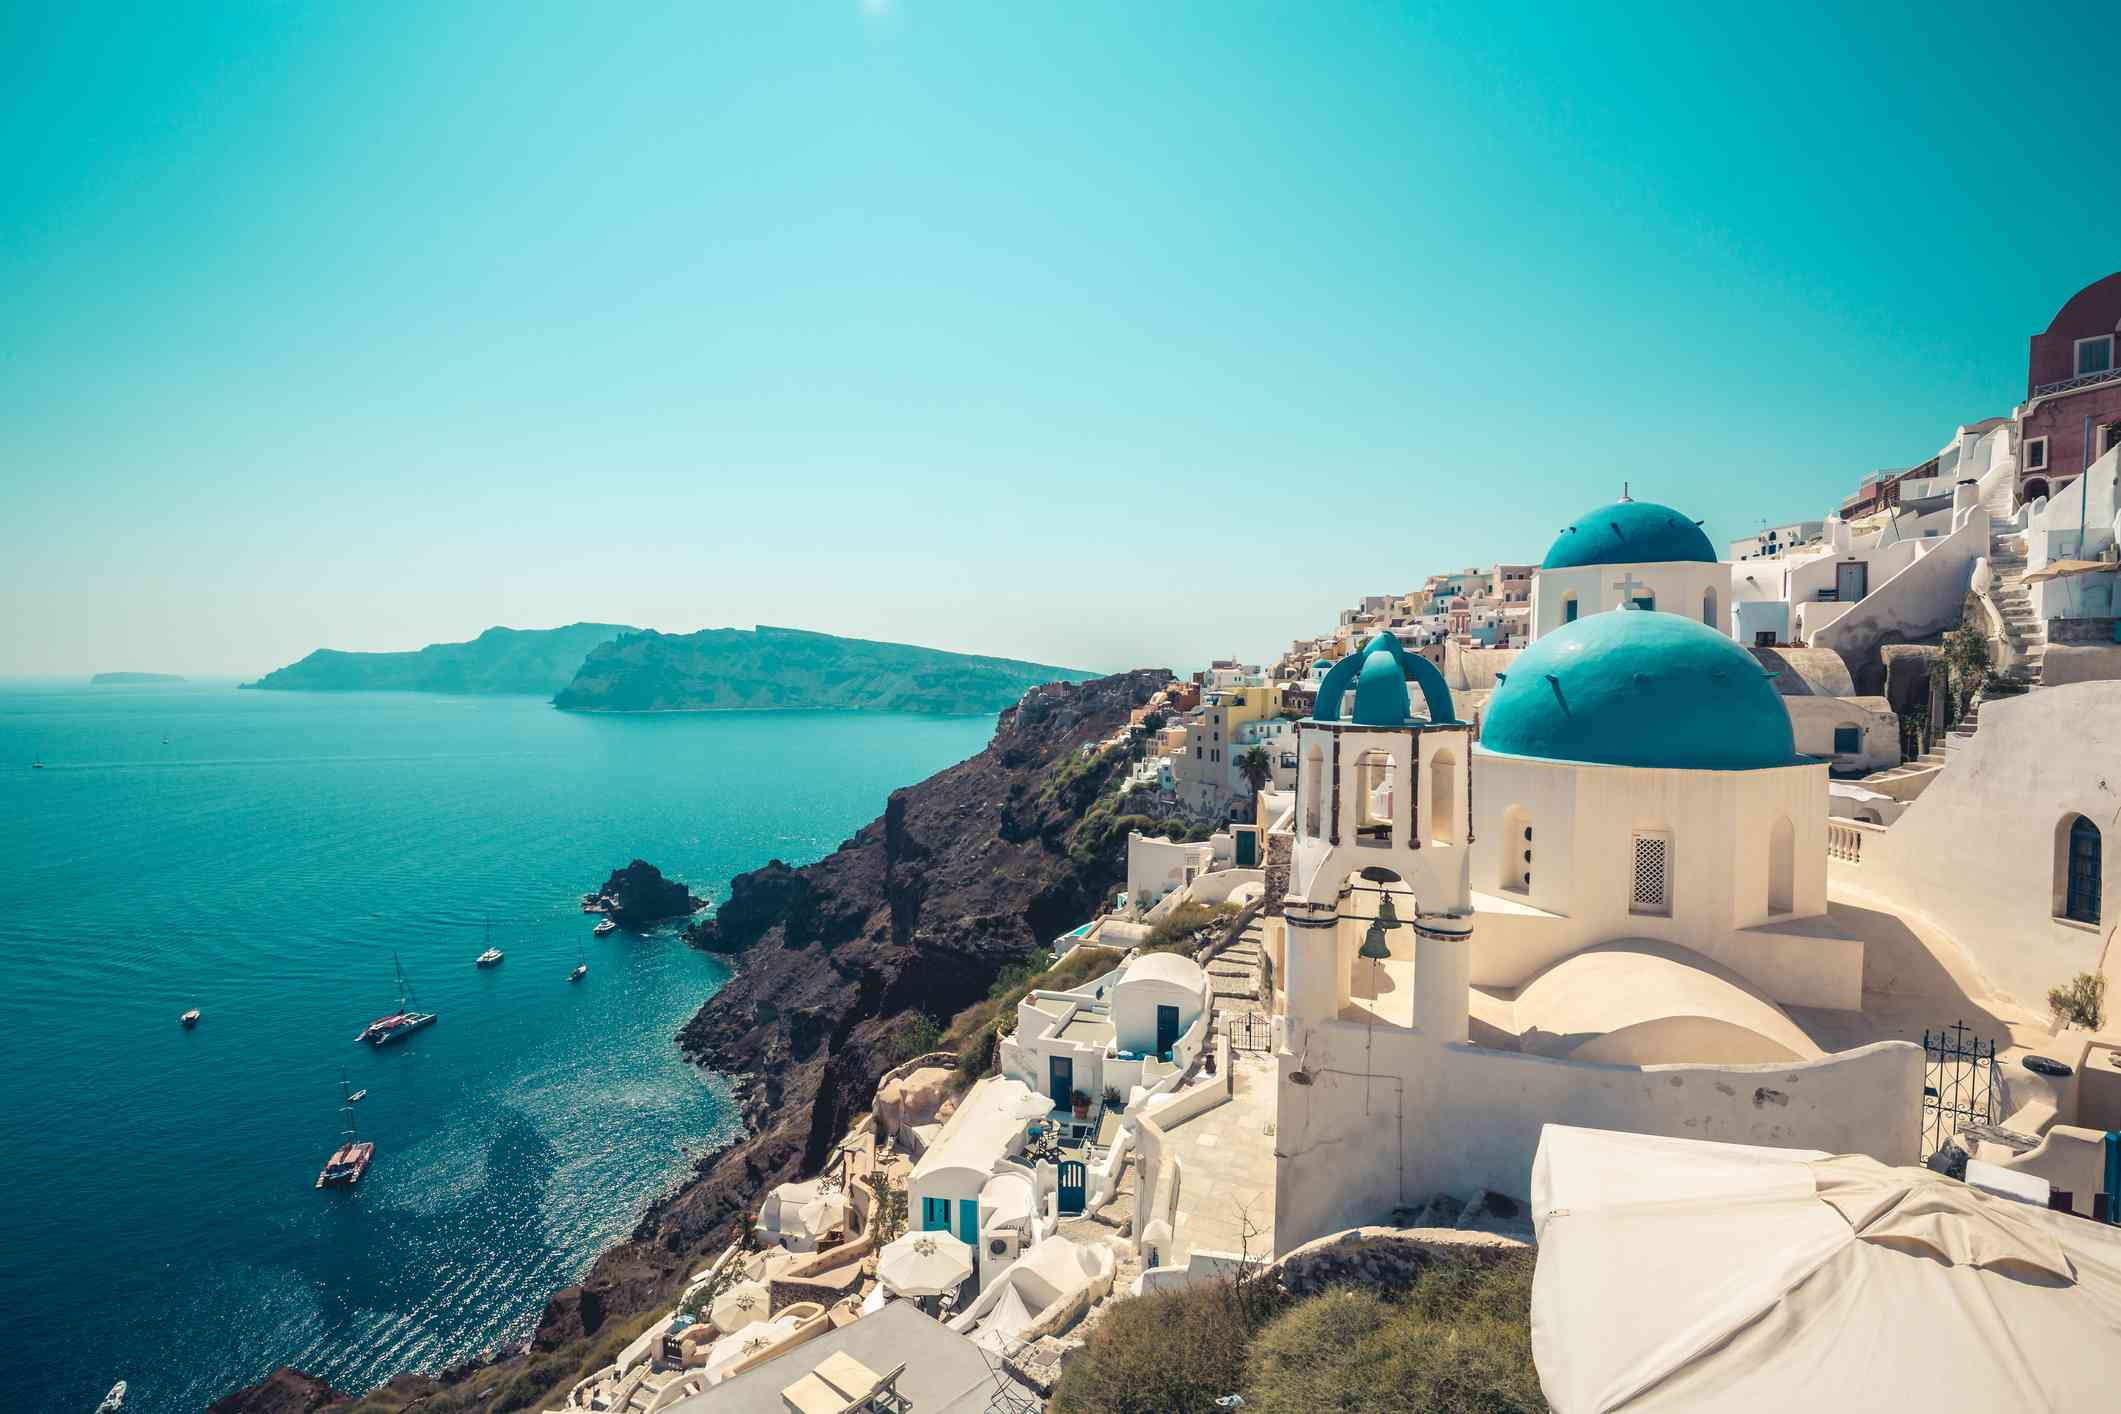 The white buildings on the cliffs of Santorini with sail boats docked below